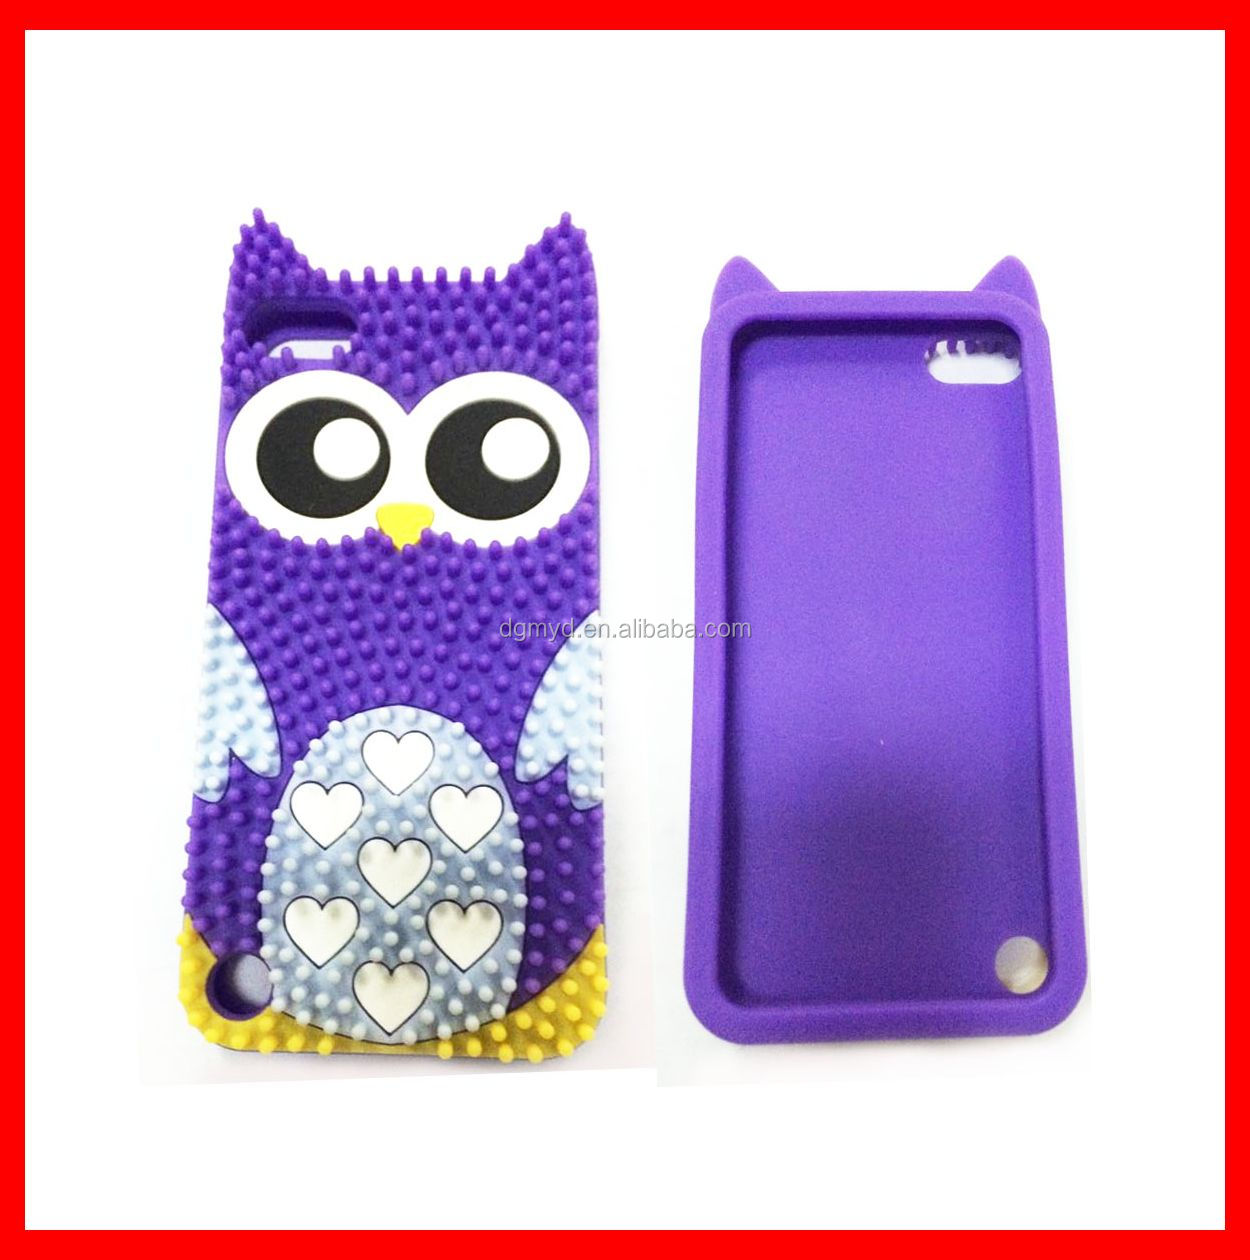 2014 Newest Cartoon Silicone Phone Case With Eye For iphone case